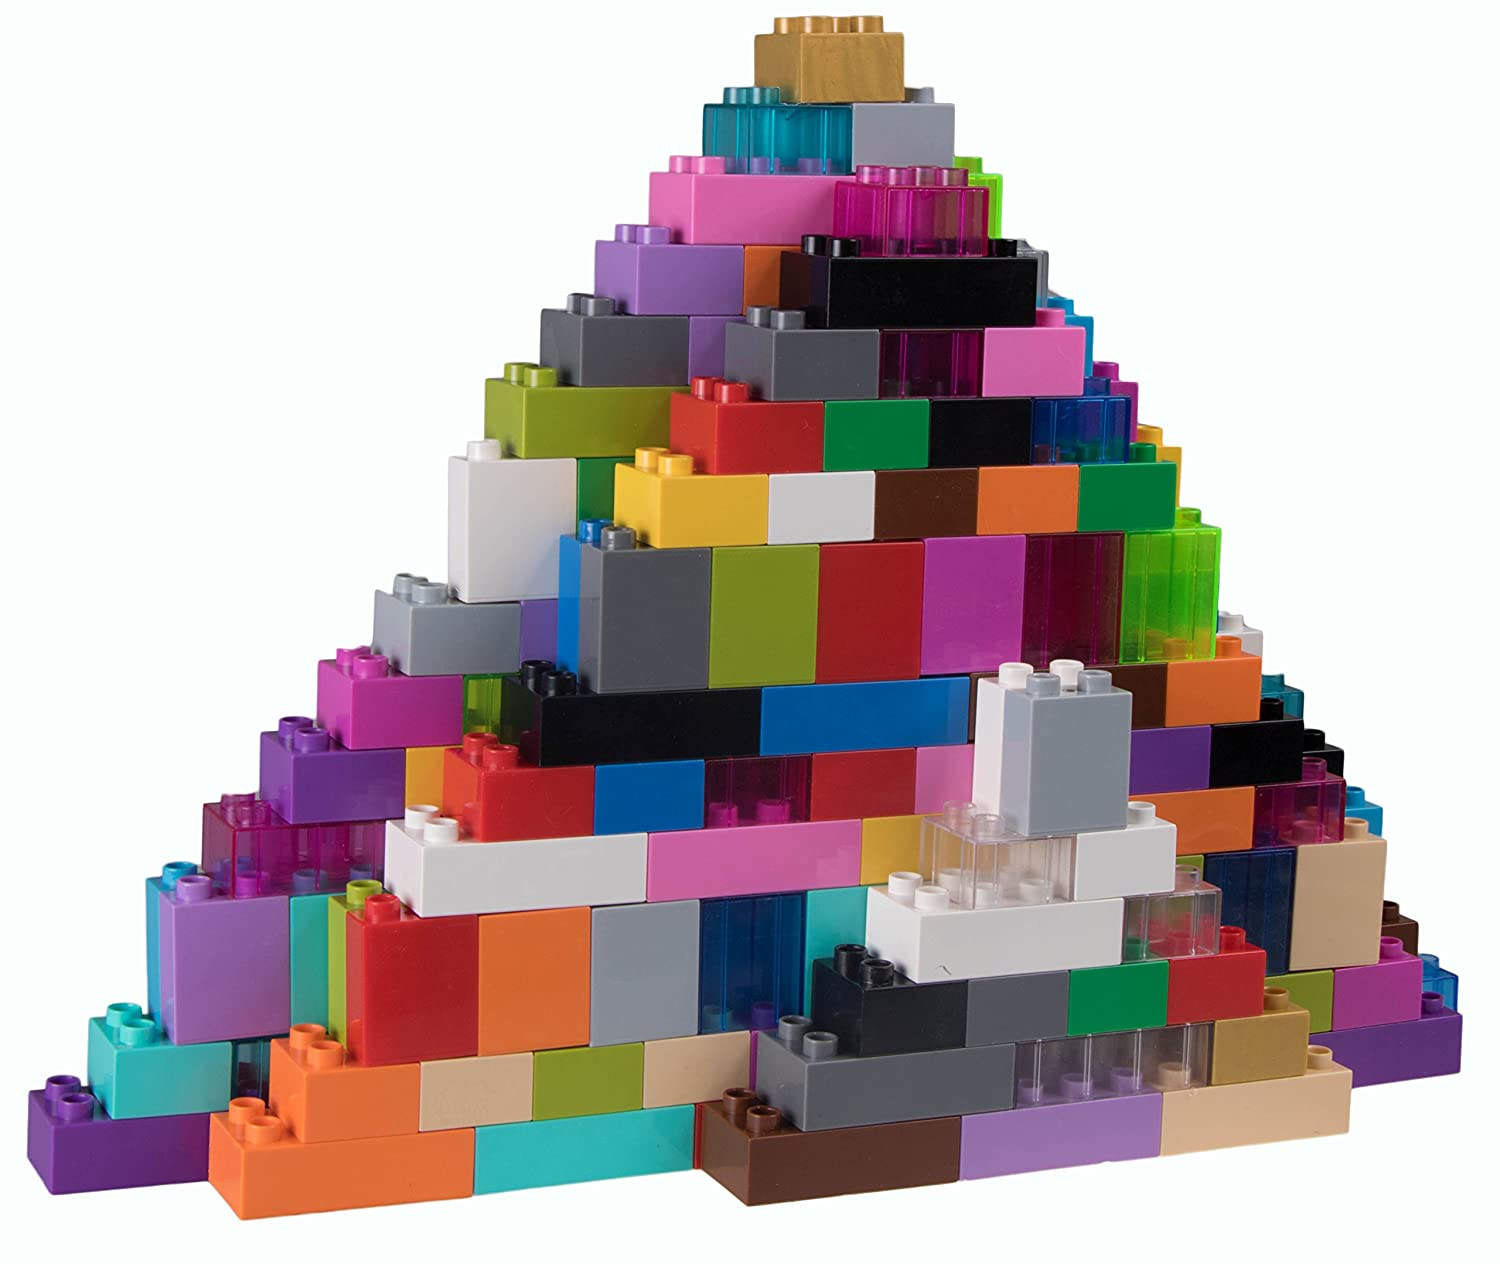 Strictly Briks Classic Big Briks Building Brick Set (204 Piece), Multicolor, Large Review